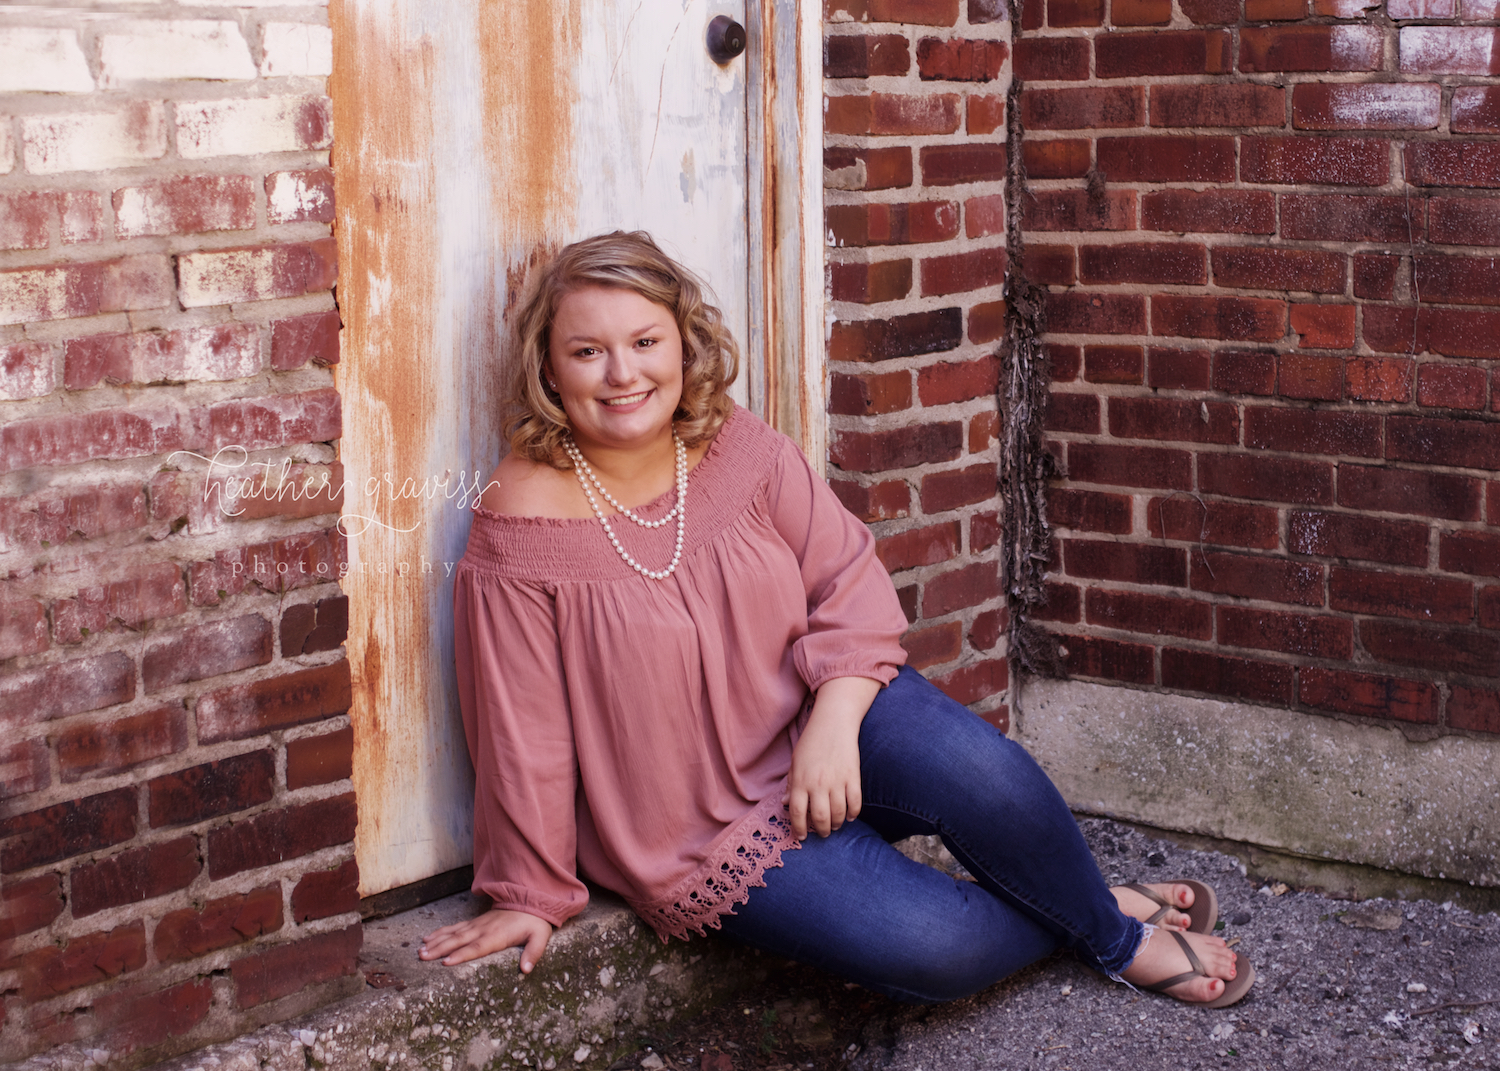 nashville middle tn senior portrait photographer 065.jpg